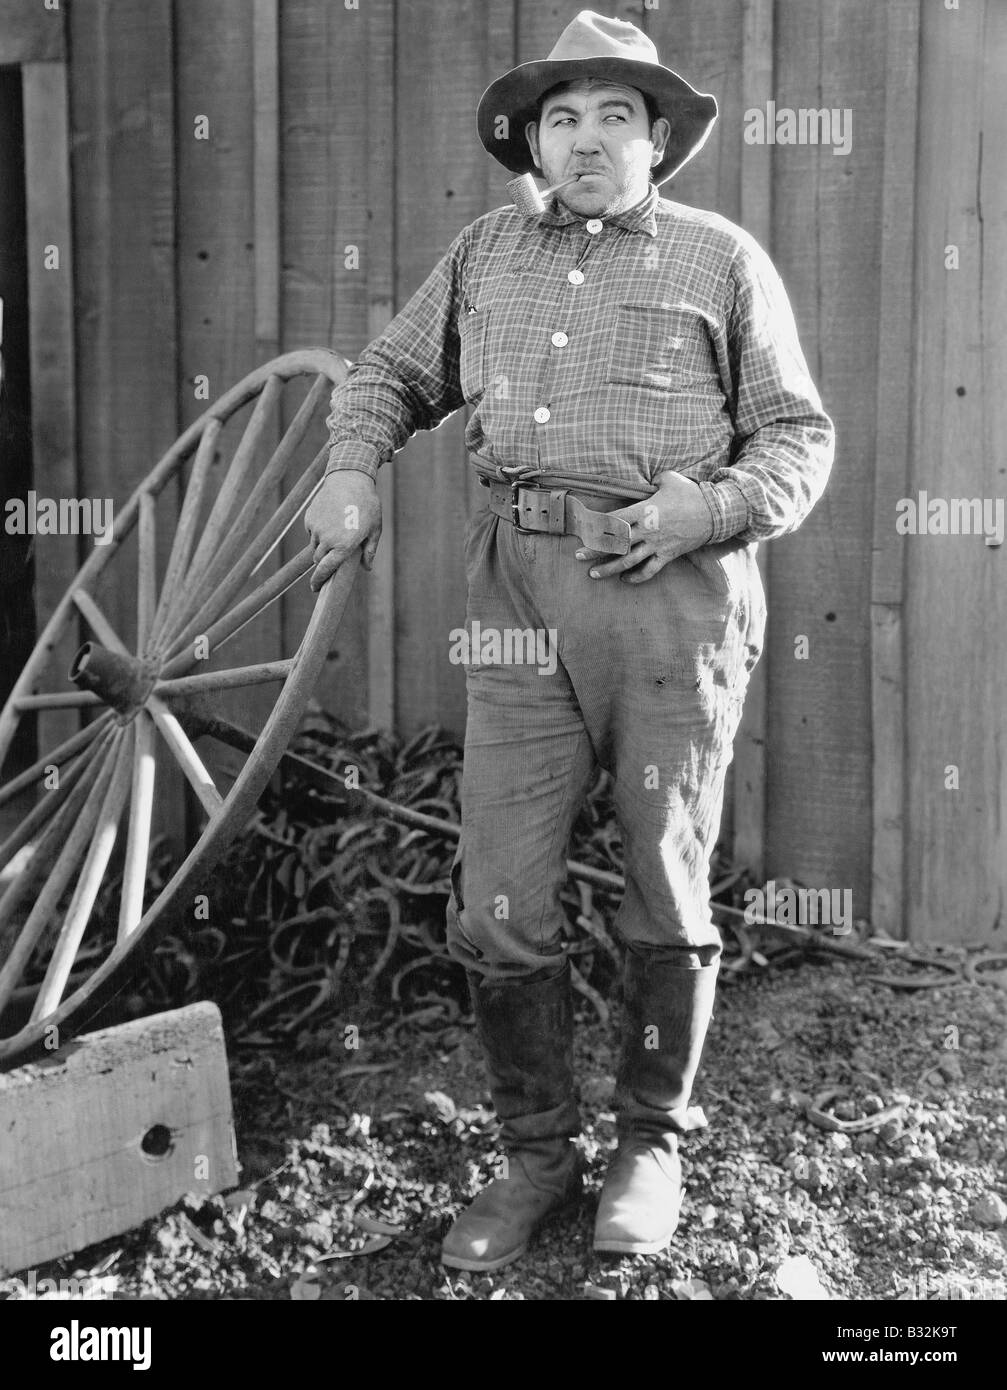 Portrait of man with pipe and wooden wheel - Stock Image